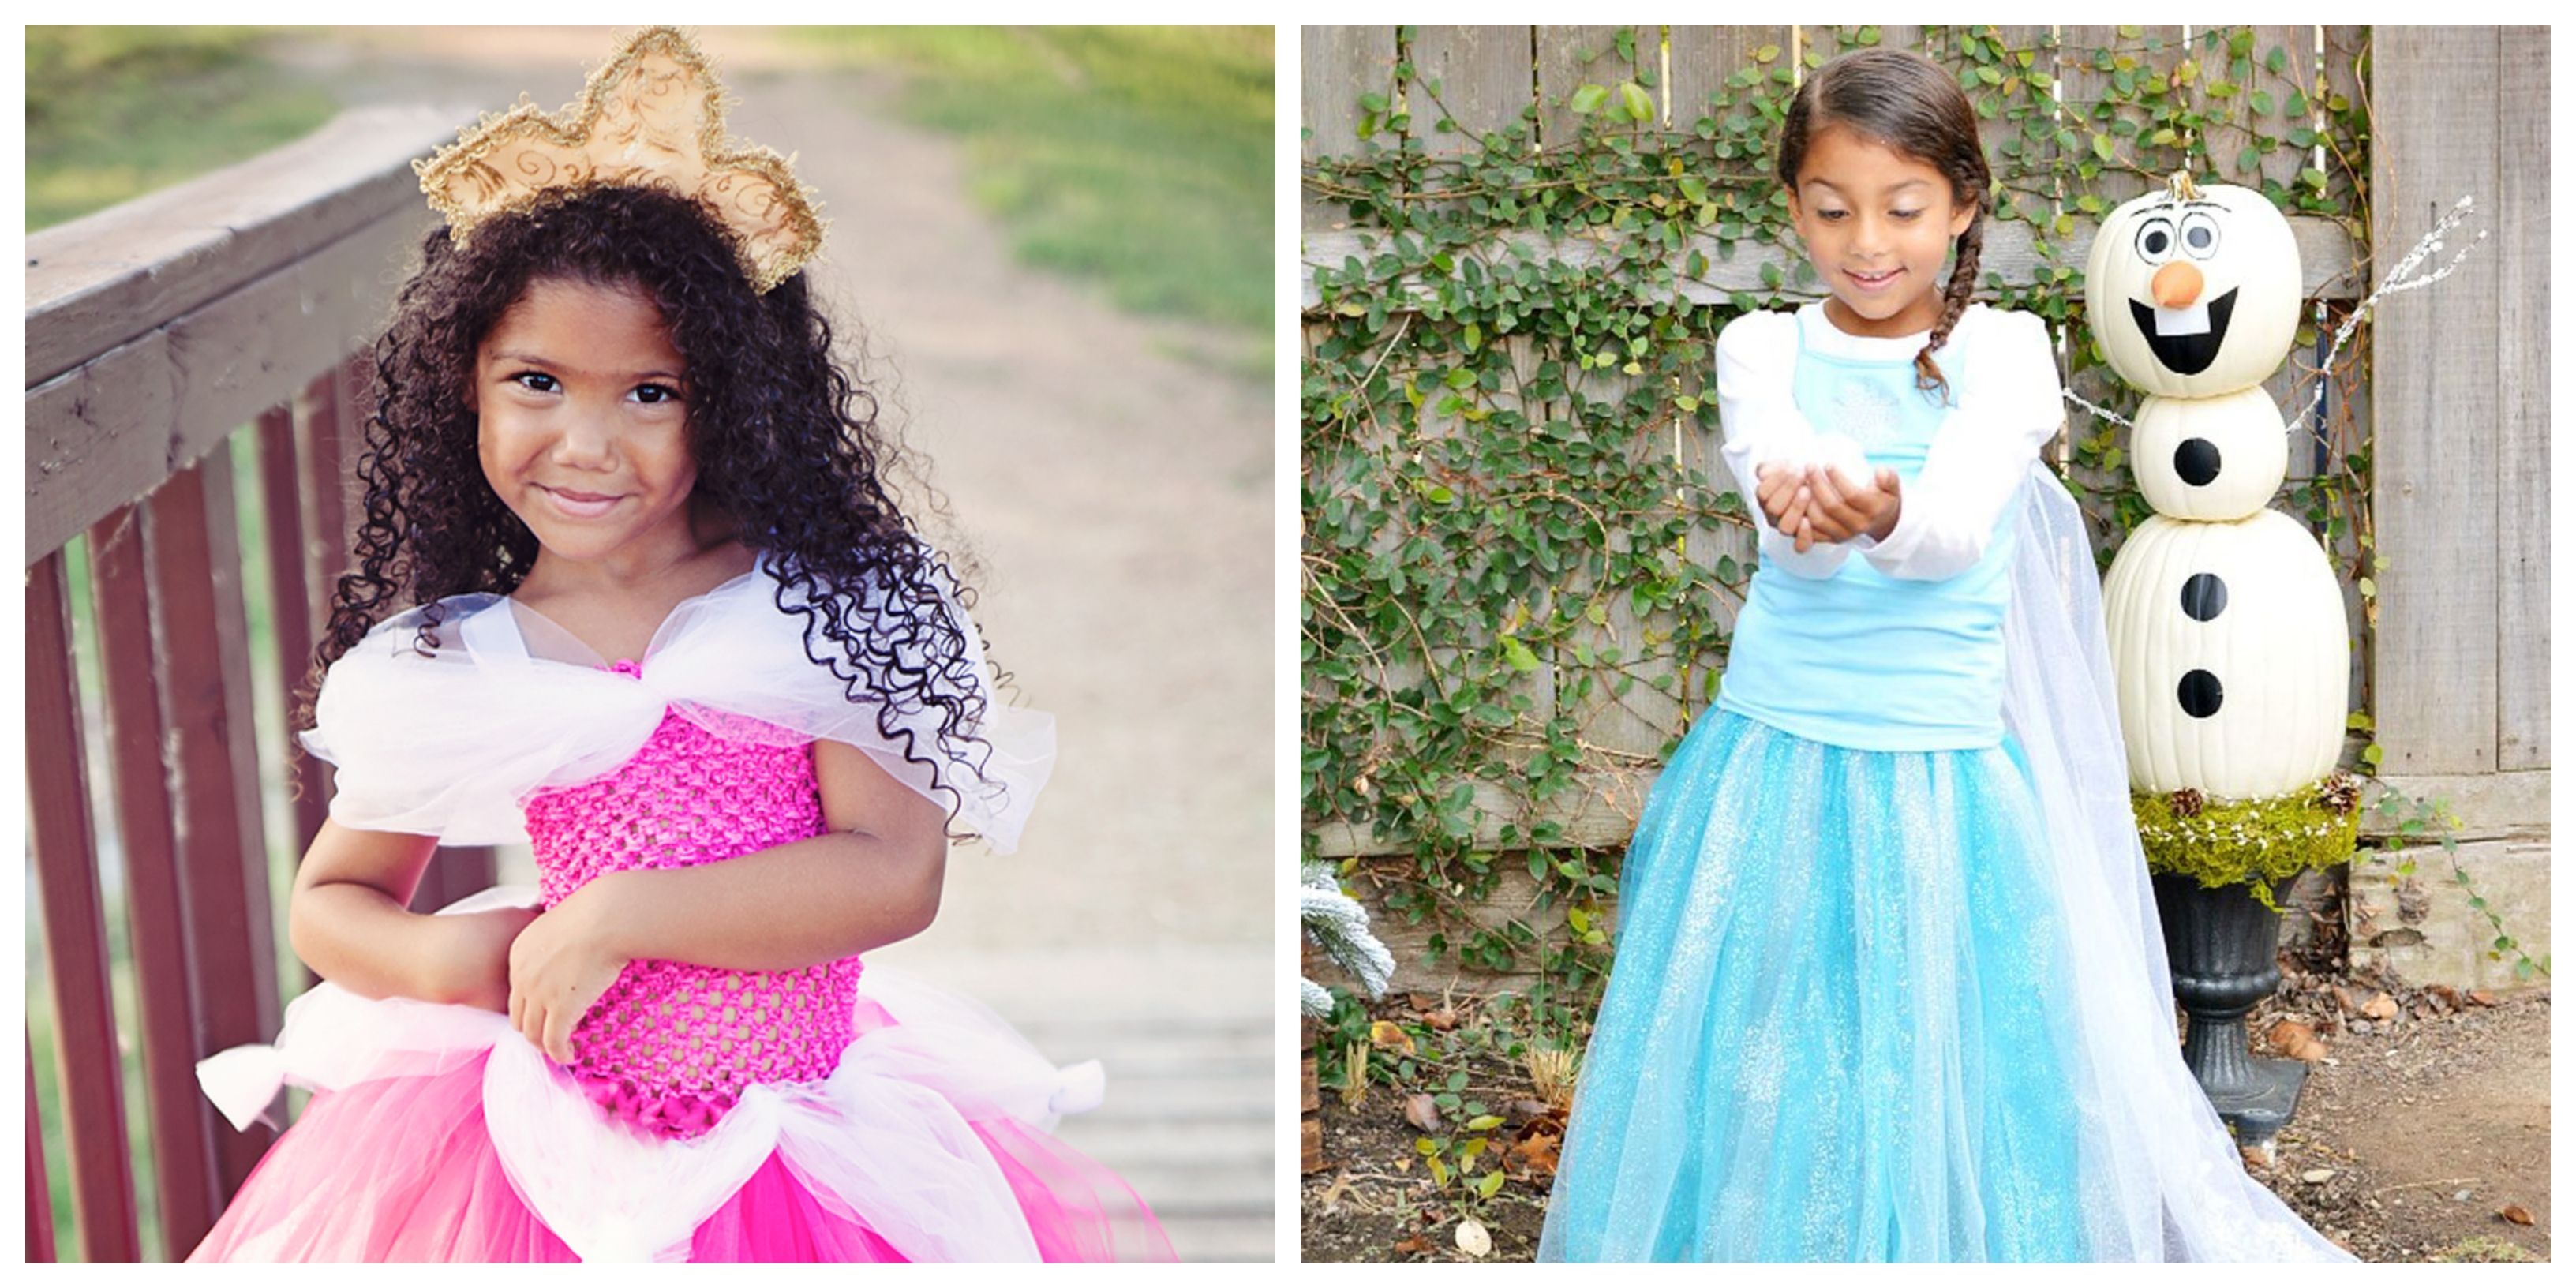 20 Diy Disney Princess Costumes Homemade Dresses For Kids  sc 1 st  DIY C&bellandkellarteam & Diy Disney Princess Costume Ideas - DIY Campbellandkellarteam